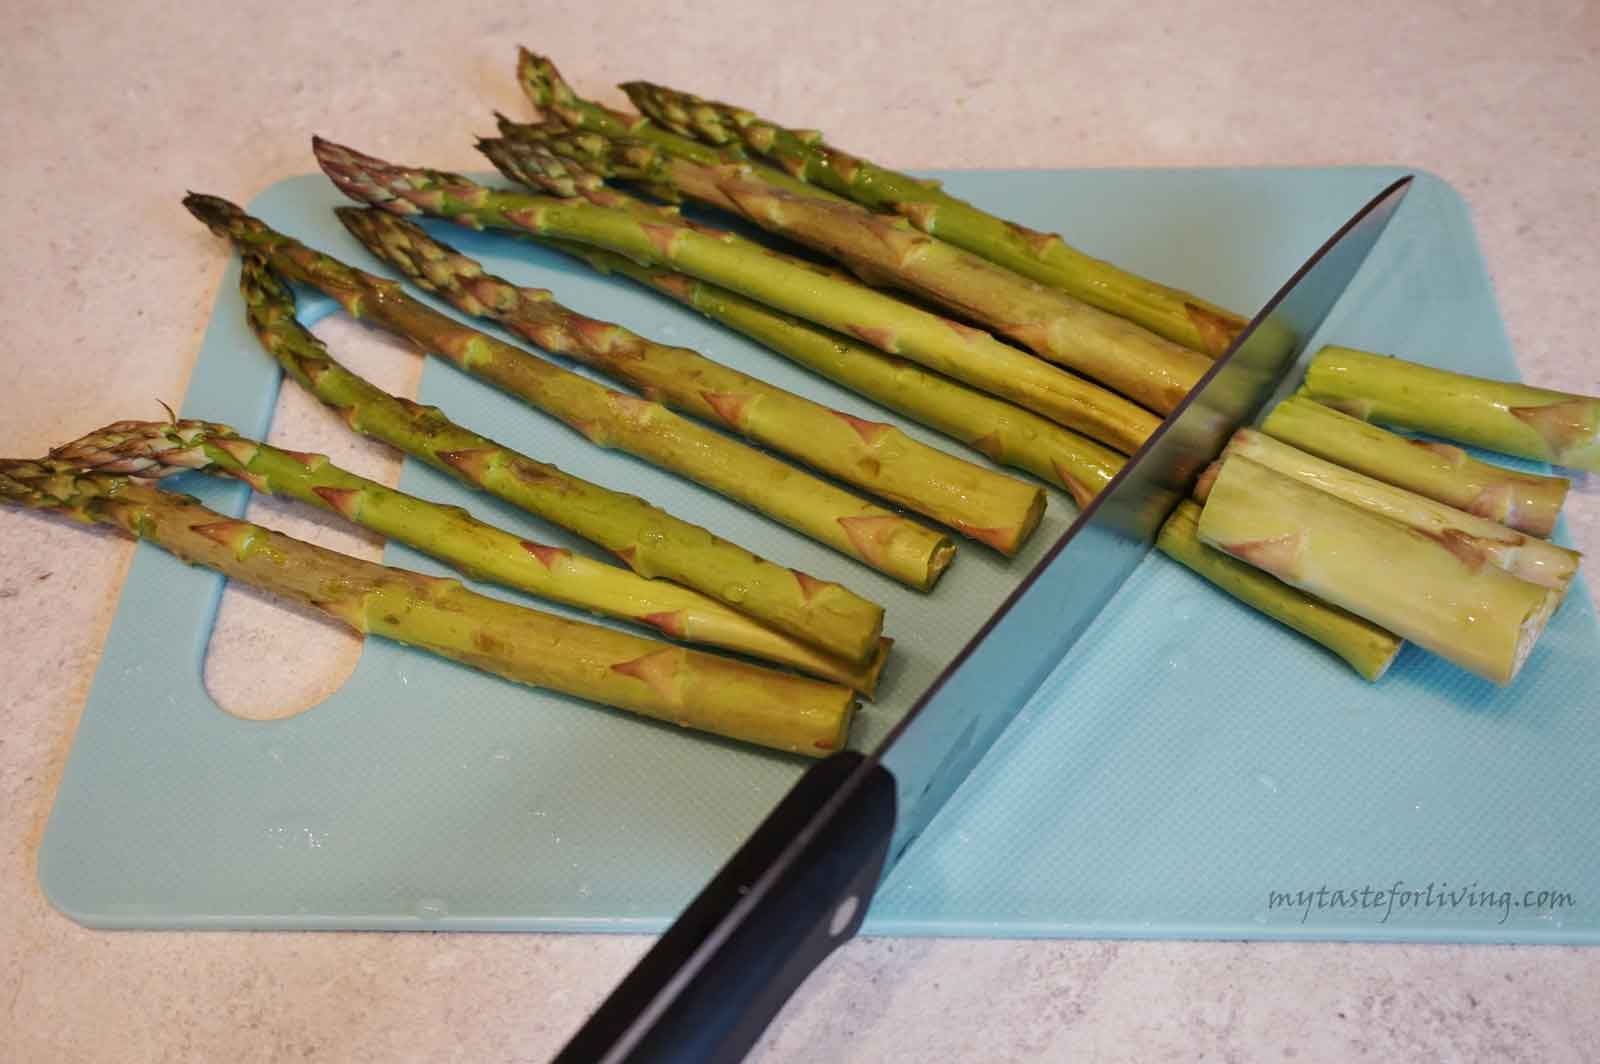 Baking asparagus is super easy and fast! I have been planning to share this recipe with you for a long time. You can serve the roasted asparagus with cherry tomatoes as a main dish or side dish. And if you grate cheese on top of them, you will lick your fingers.